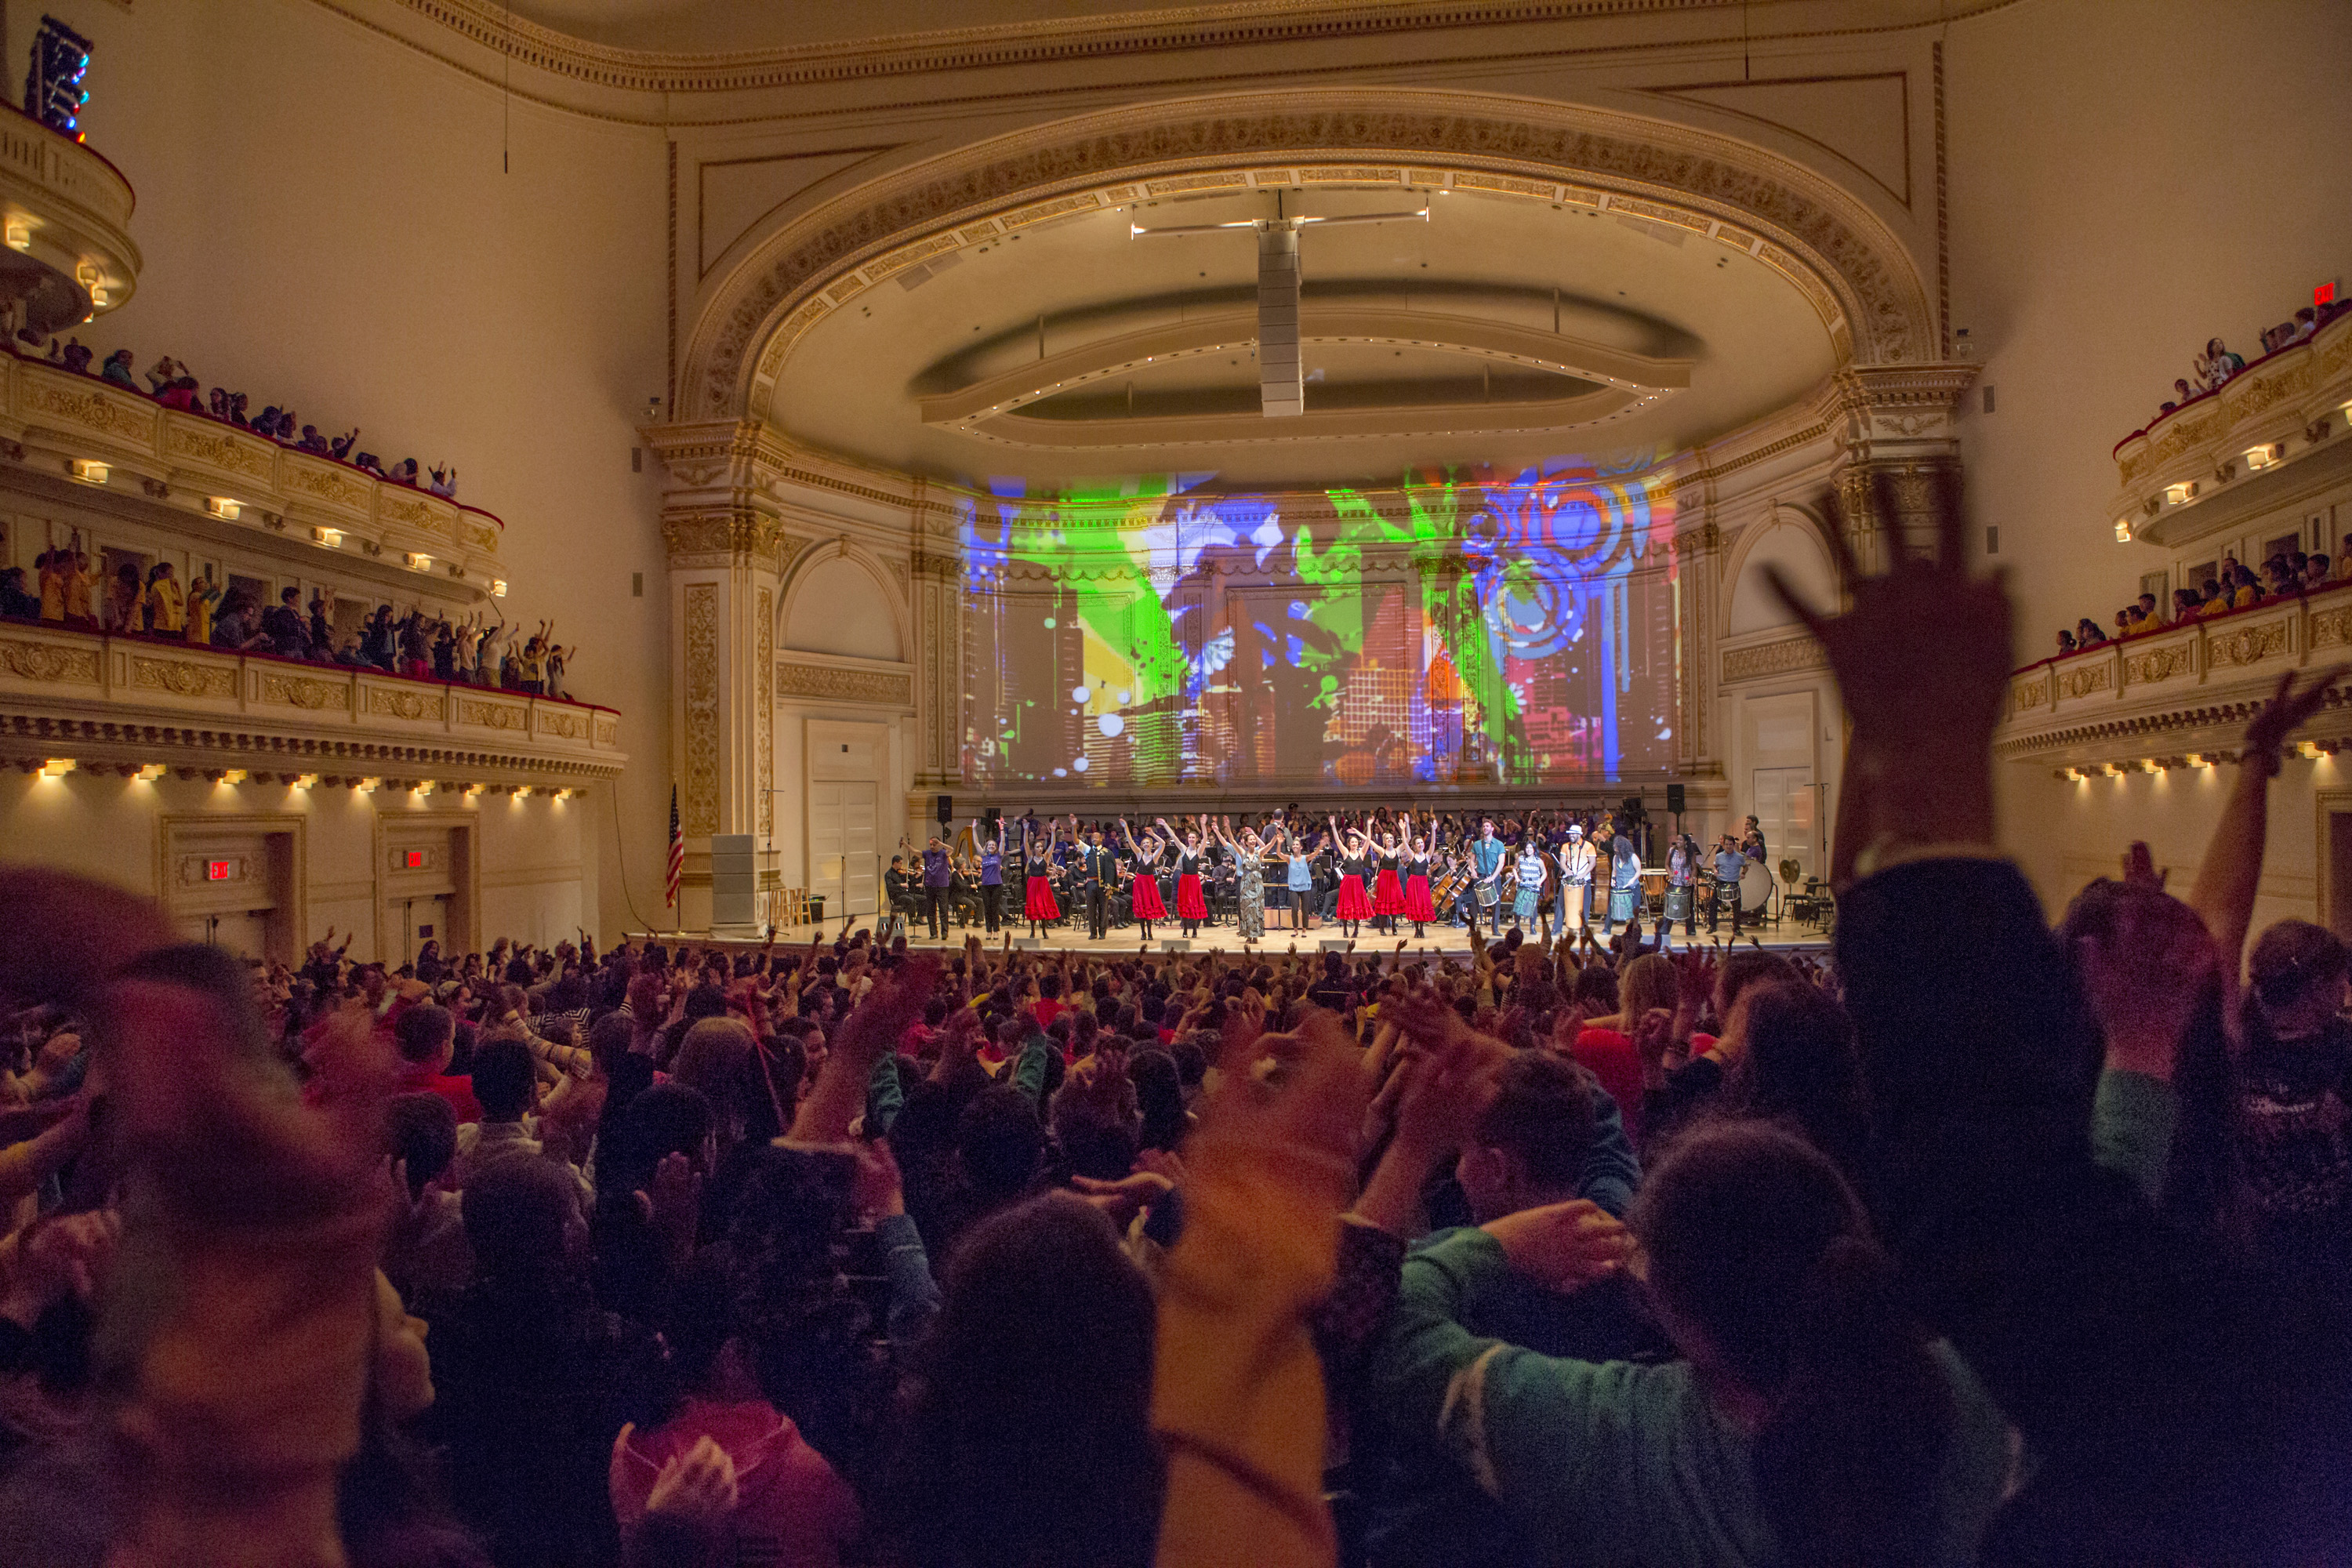 2017 Muscial America Shaping the Future of Education: Carnegie Hall at 125